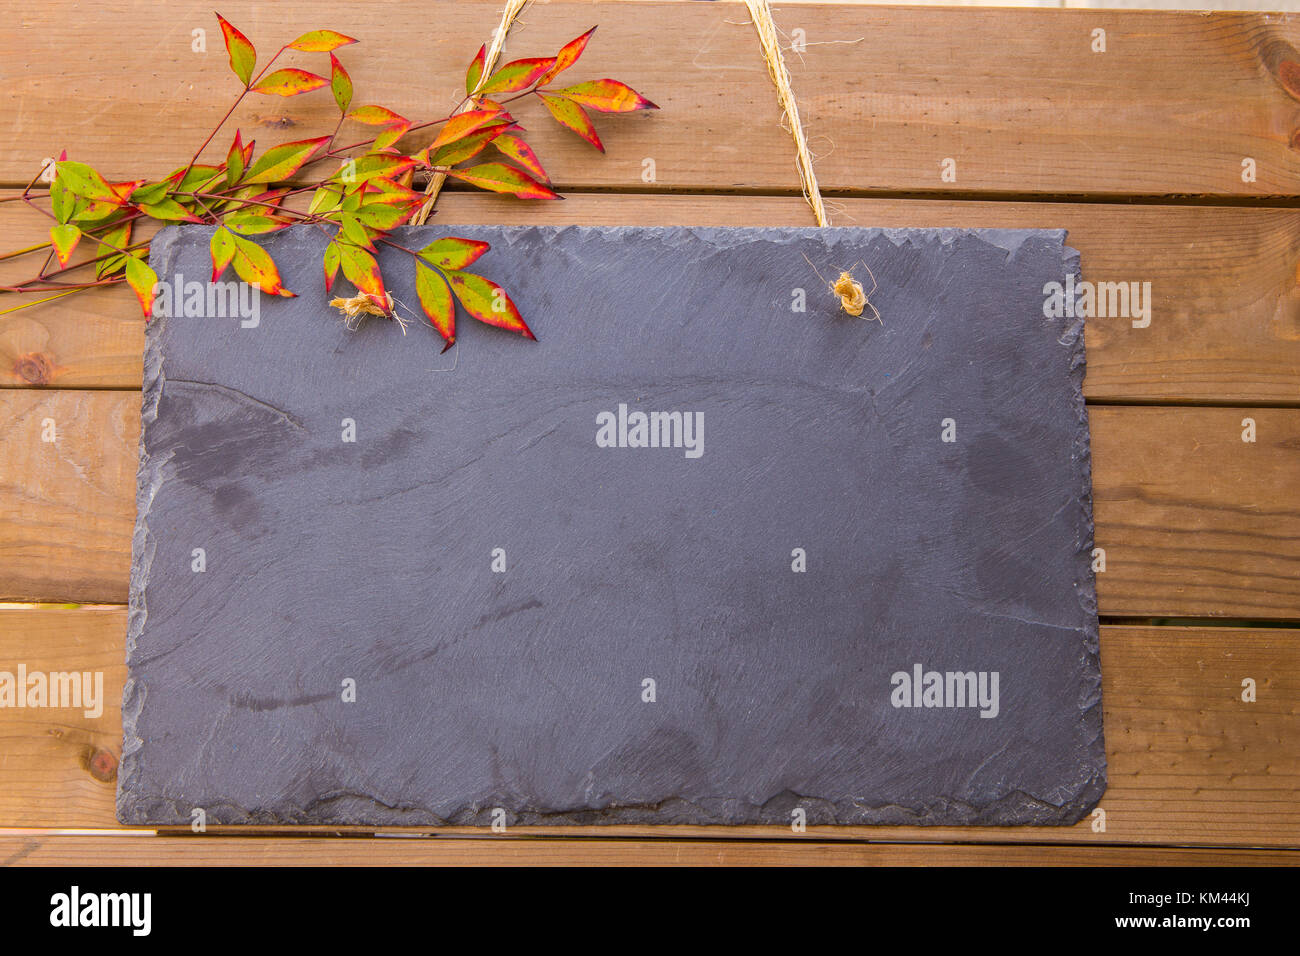 Rustic blank slate noticeboard hanging by twine on a wood background - Stock Image